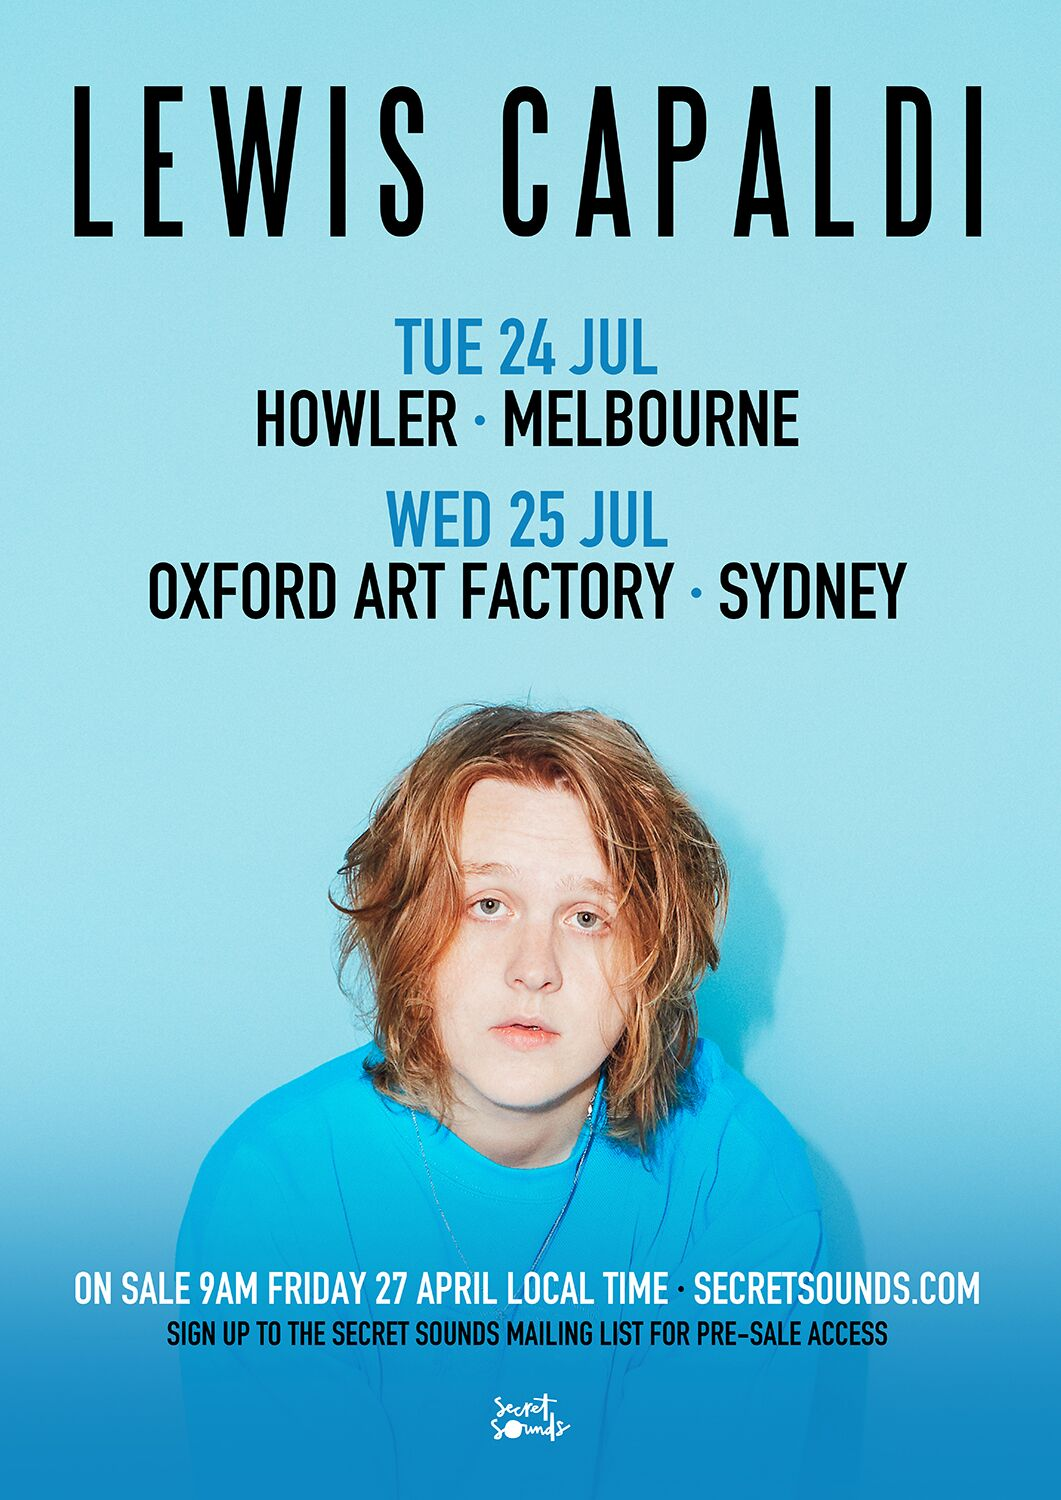 lewiscapaldi_webposter_OSD1[1][4]_preview.jpeg